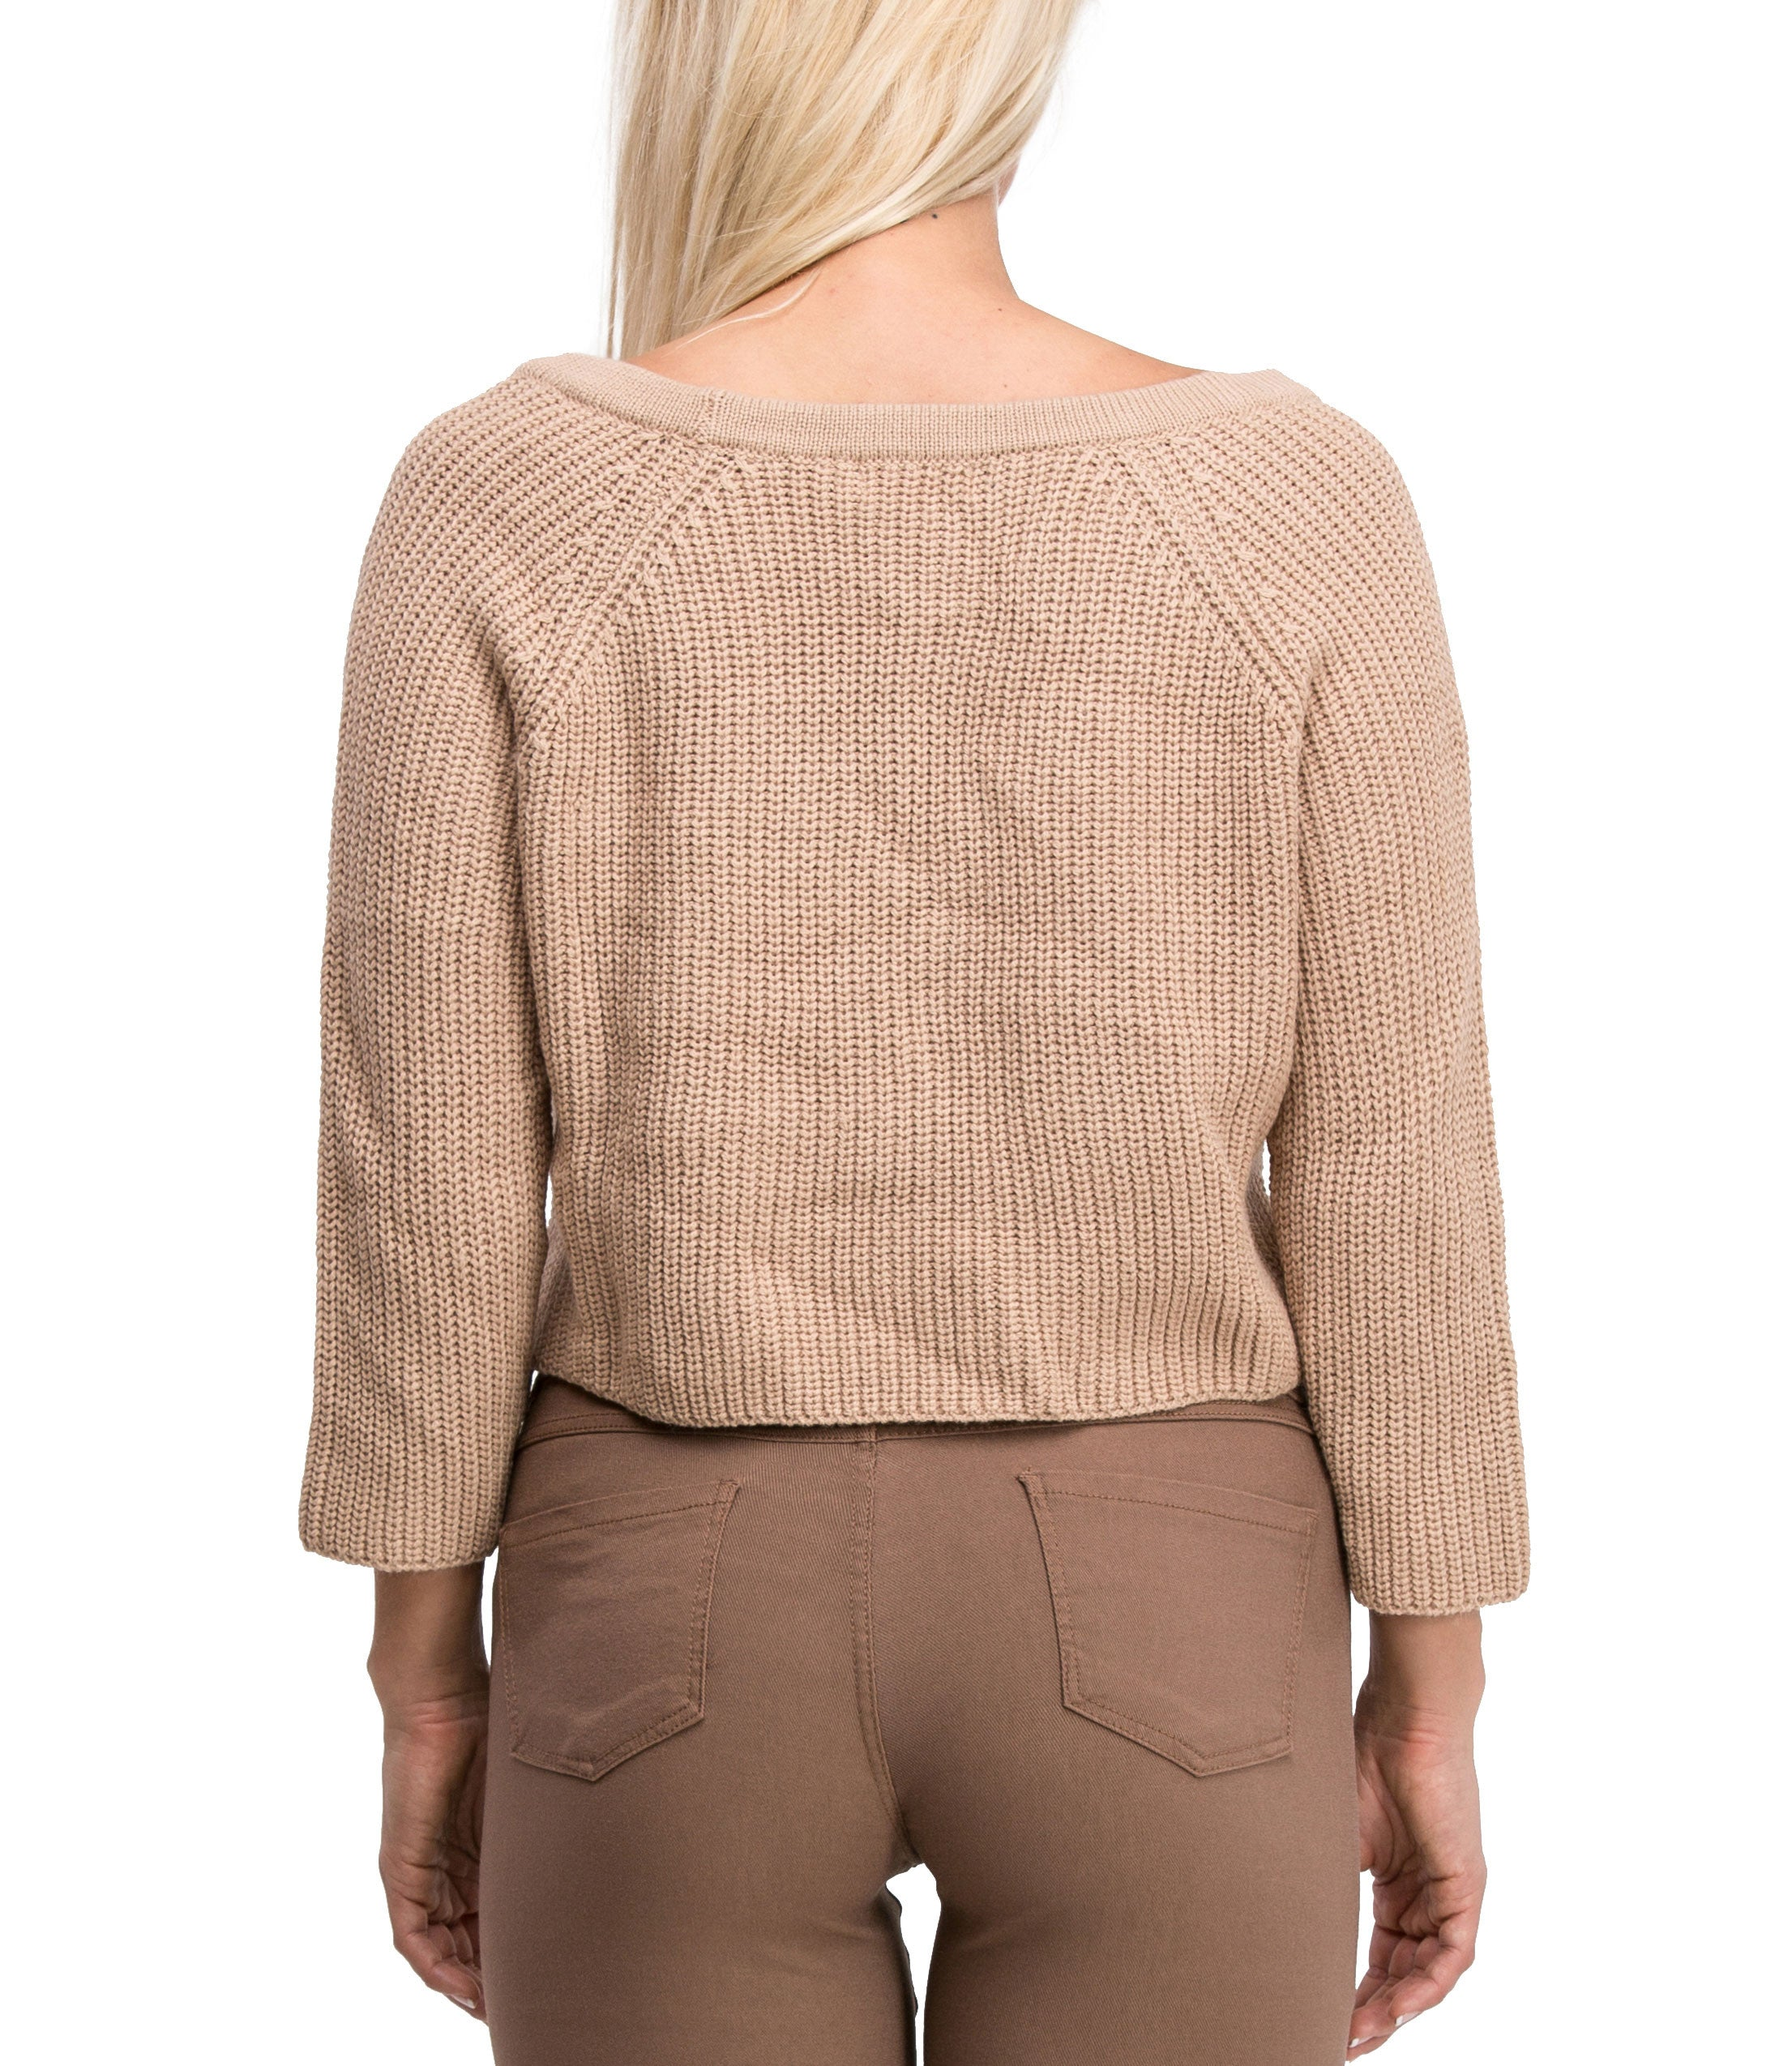 Irresistible Sexy Medium Sleeve Lace Up Crop Top Sweater (Beige) - Poplooks